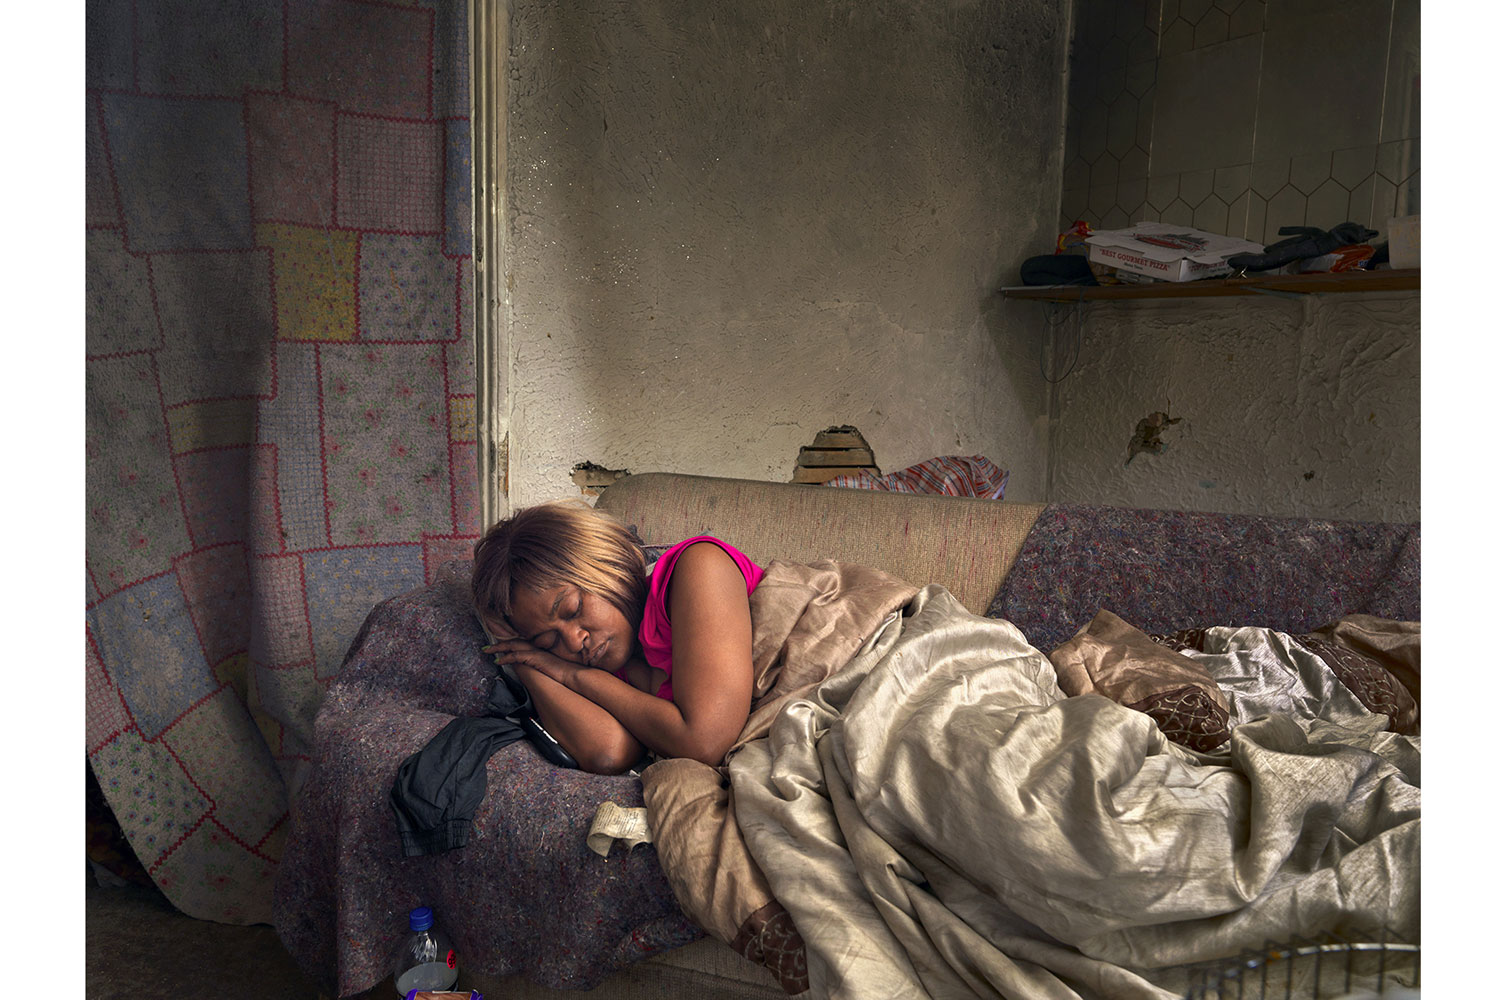 Diane Sleeping, Poletown, Detroit, 2013                                                              Diane was homeless and staying at a friend's house temporarily.